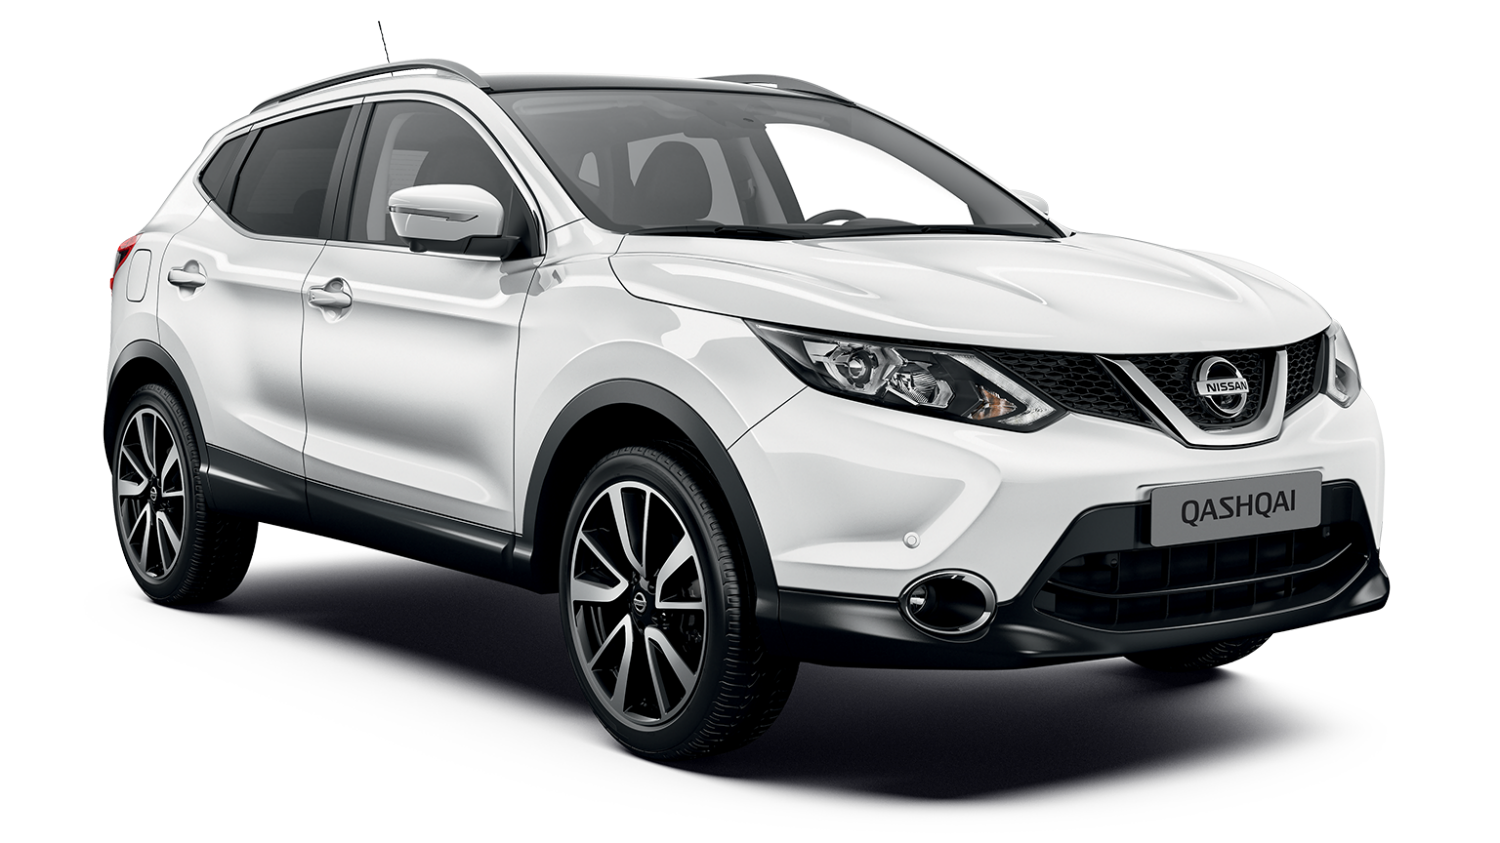 prix caract ristiques nissan qashqai crossover suv nissan. Black Bedroom Furniture Sets. Home Design Ideas